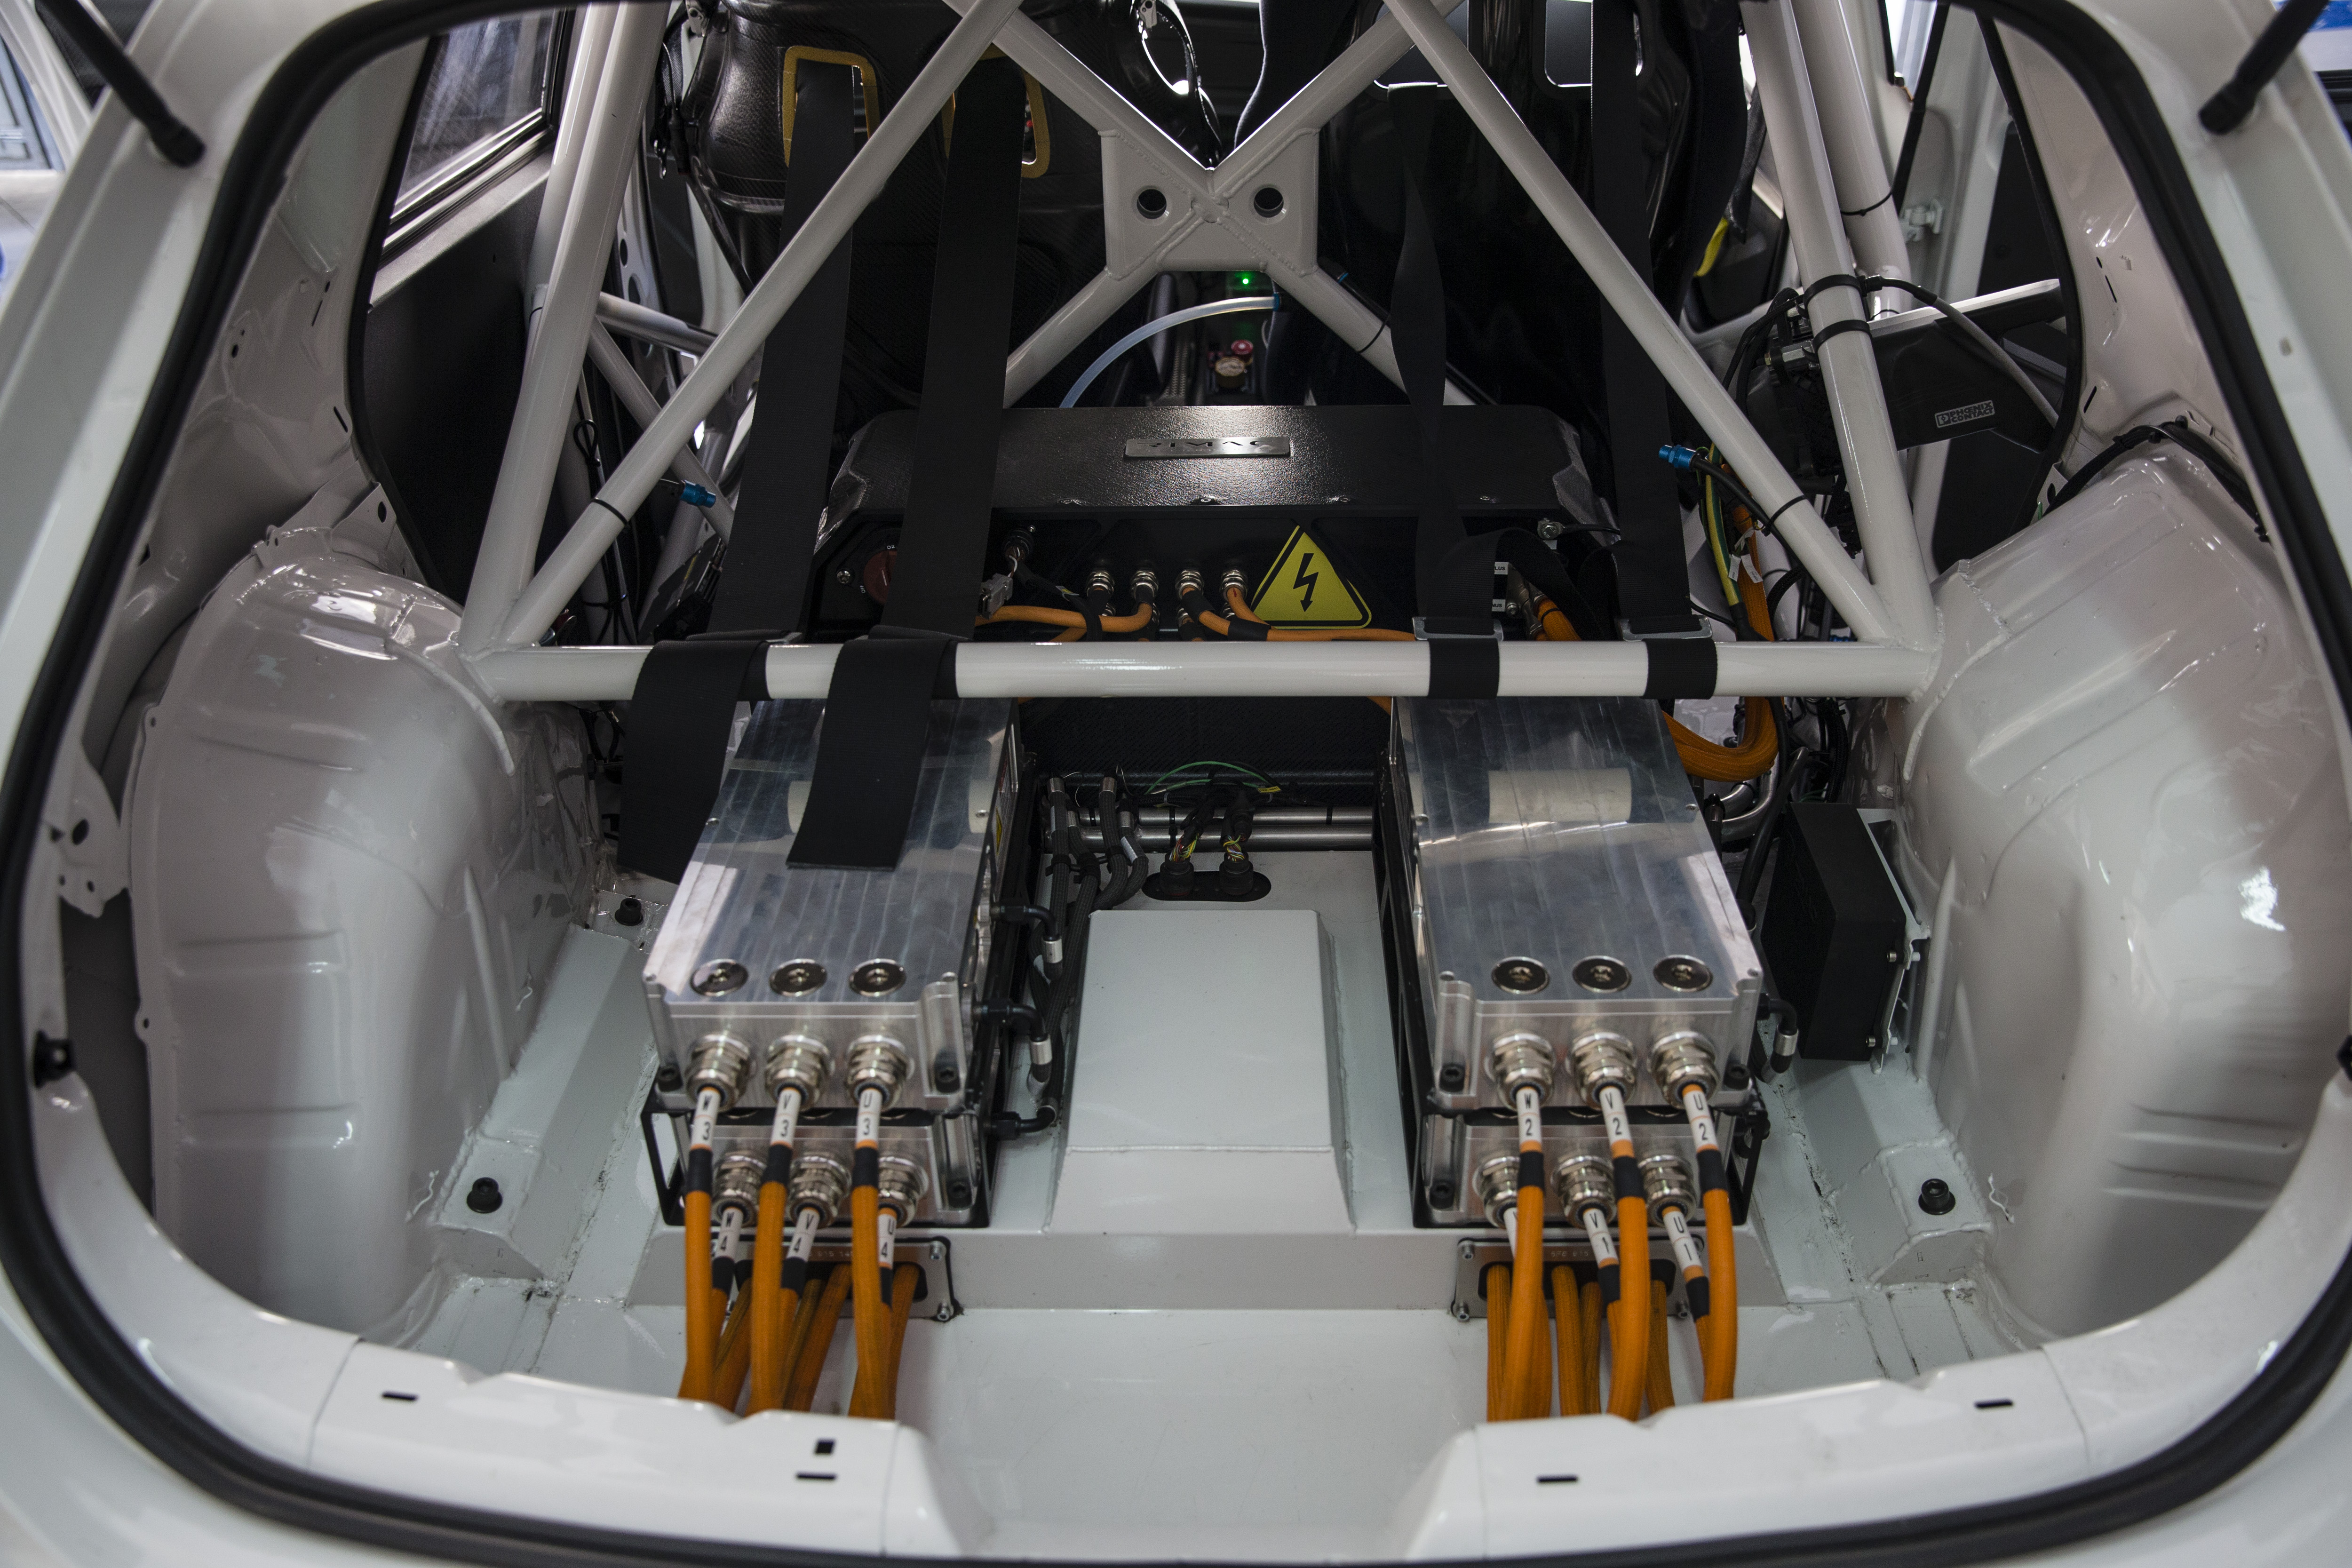 Four engines, located at the rear, succeed in reaching 12,000 rpm